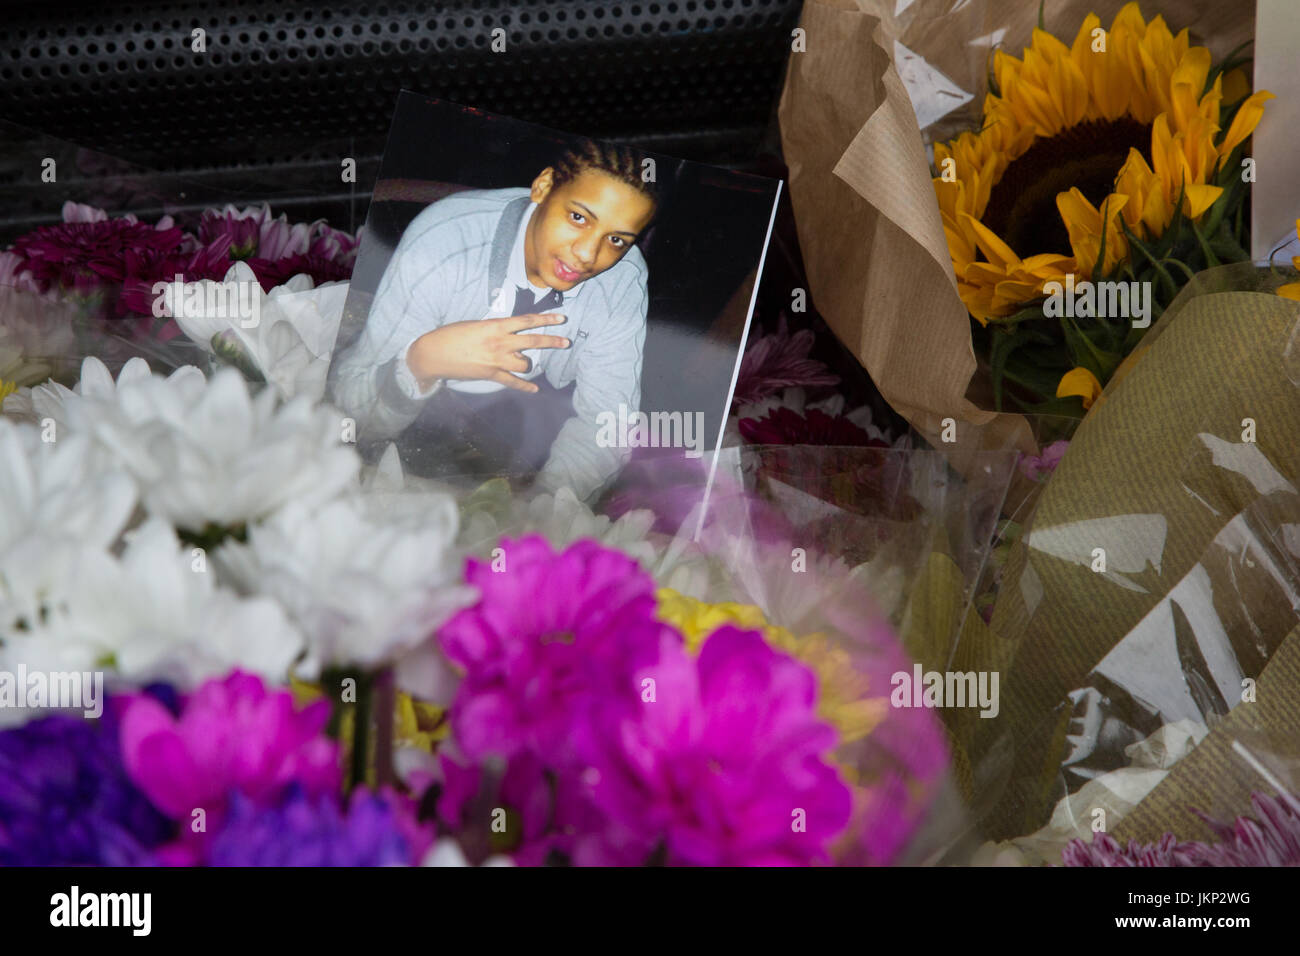 London, UK. 24th July, 2017. Floral tributes for Rashan Charles who died after being chased and arrested by police - Stock Image